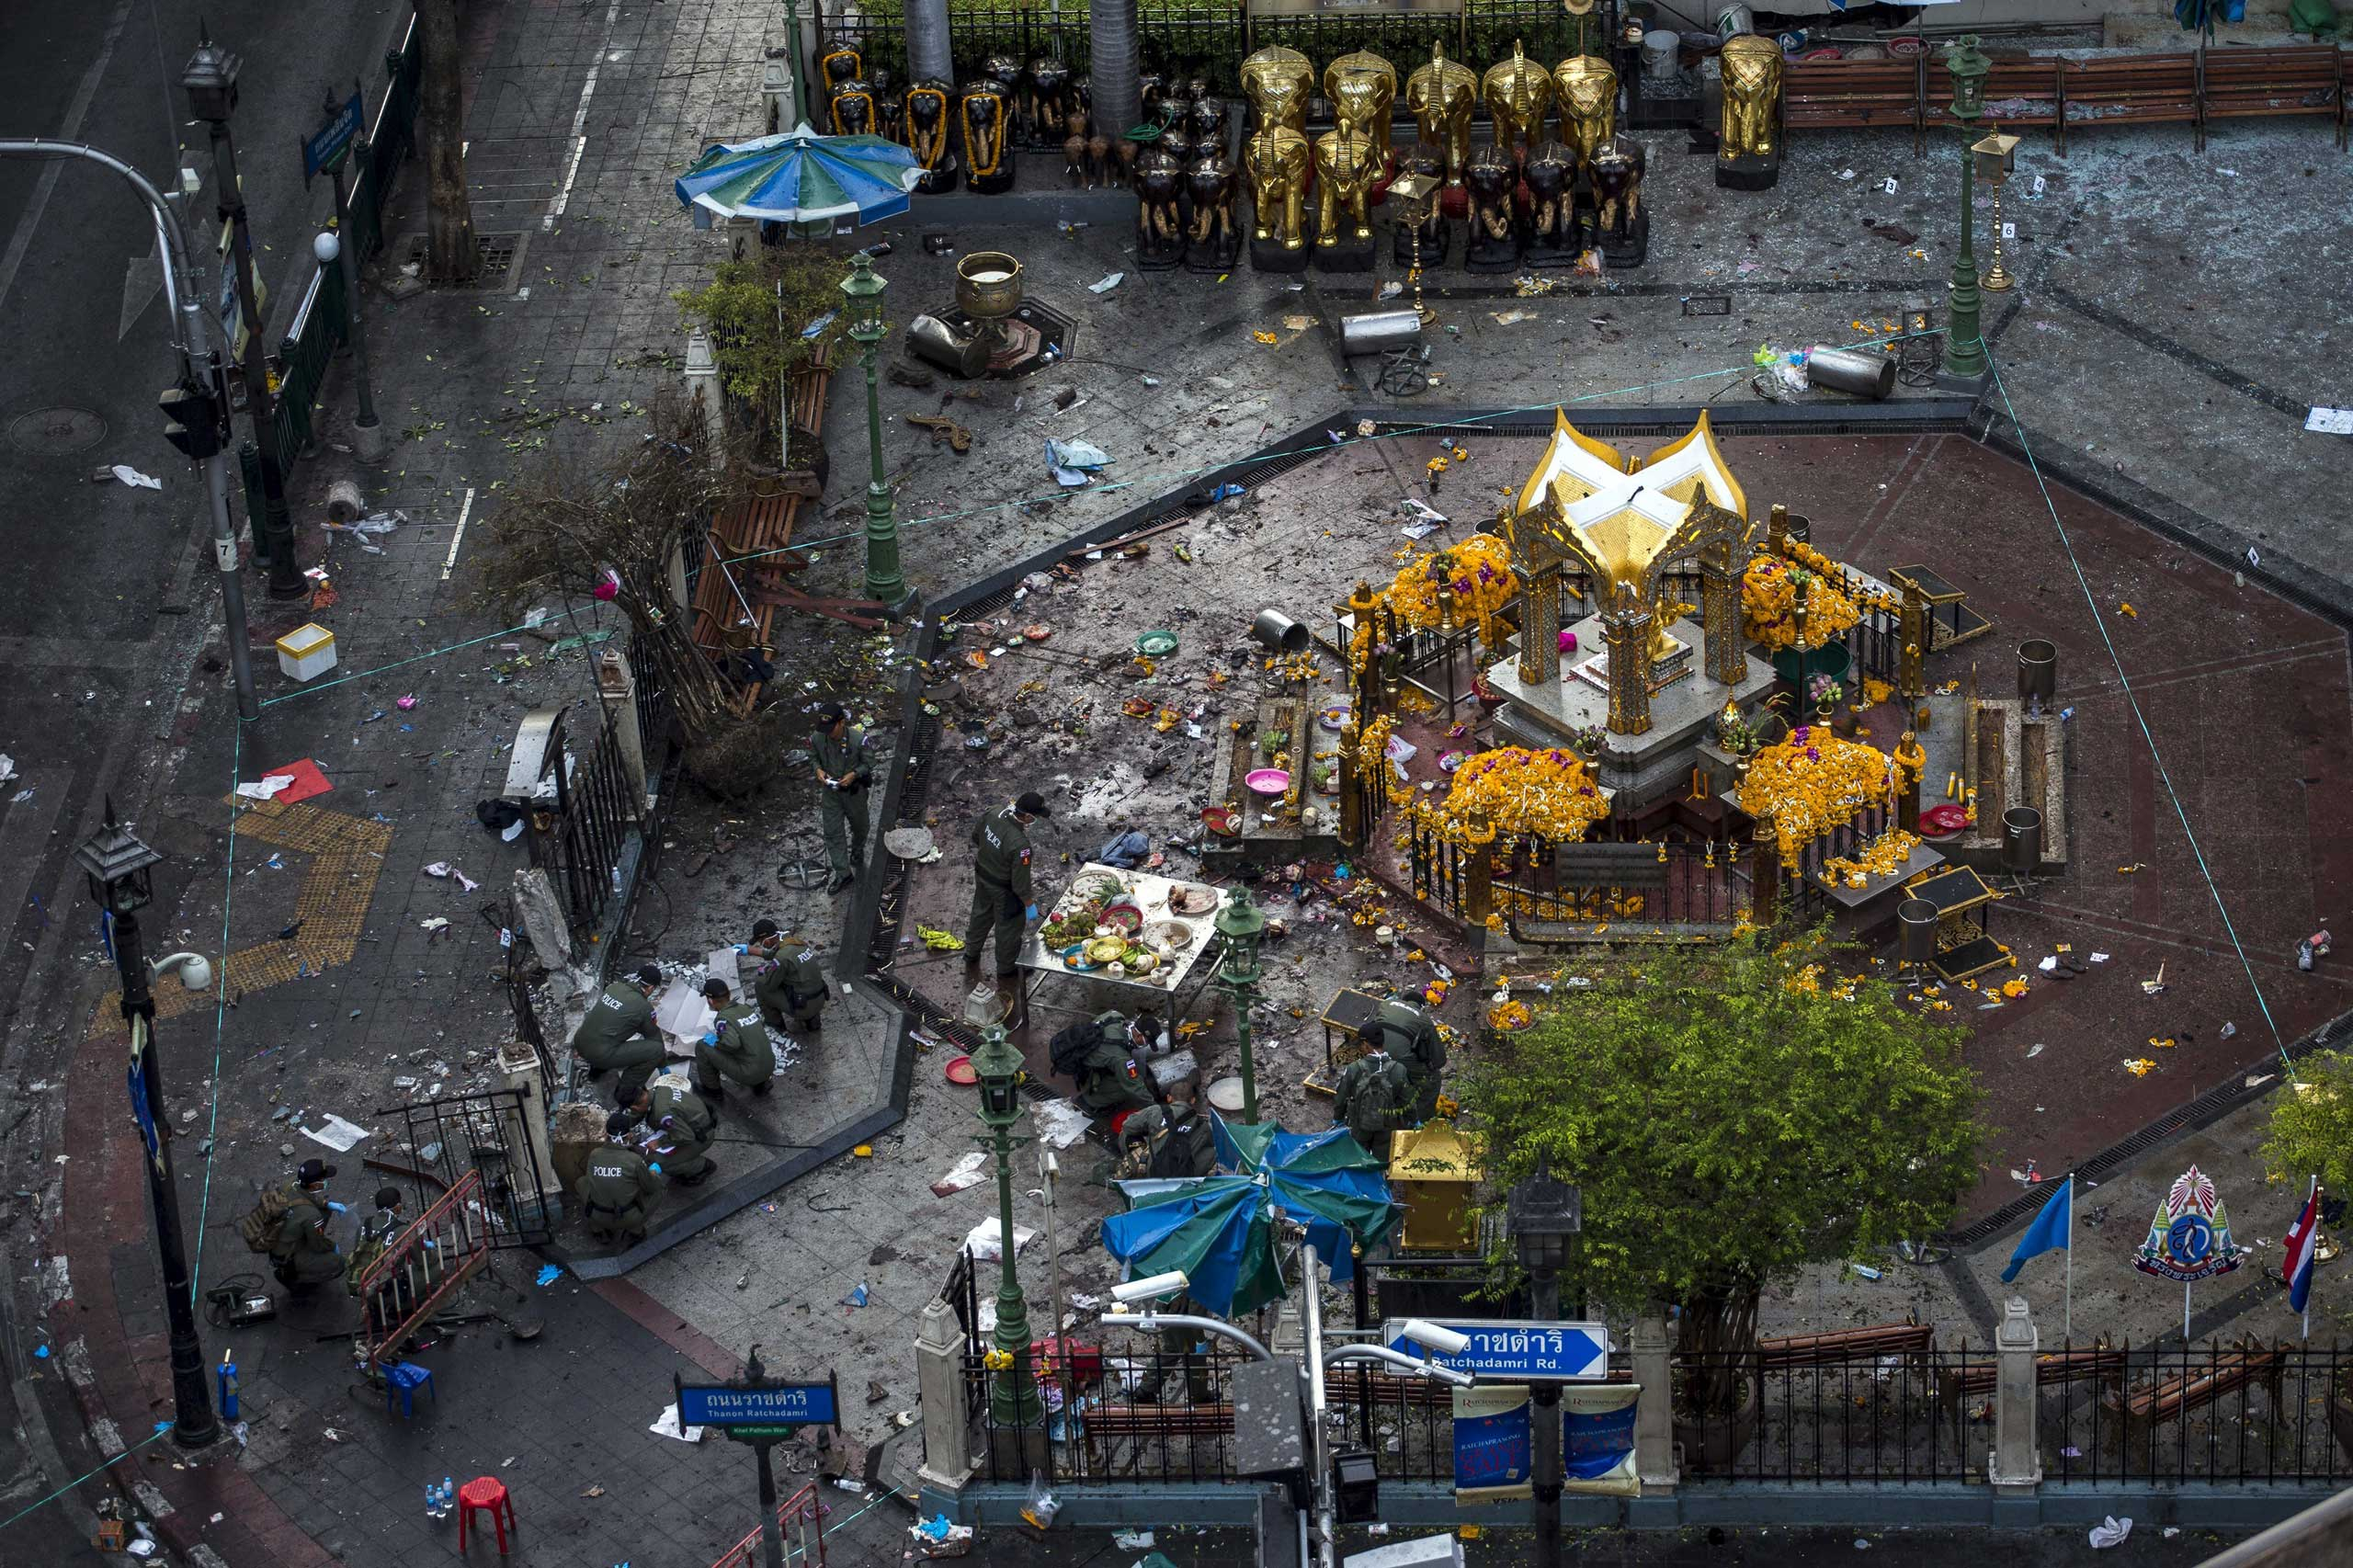 Experts investigate the Erawan shrine at the site of a deadly blast in central Bangkok, on Aug. 18, 2015.